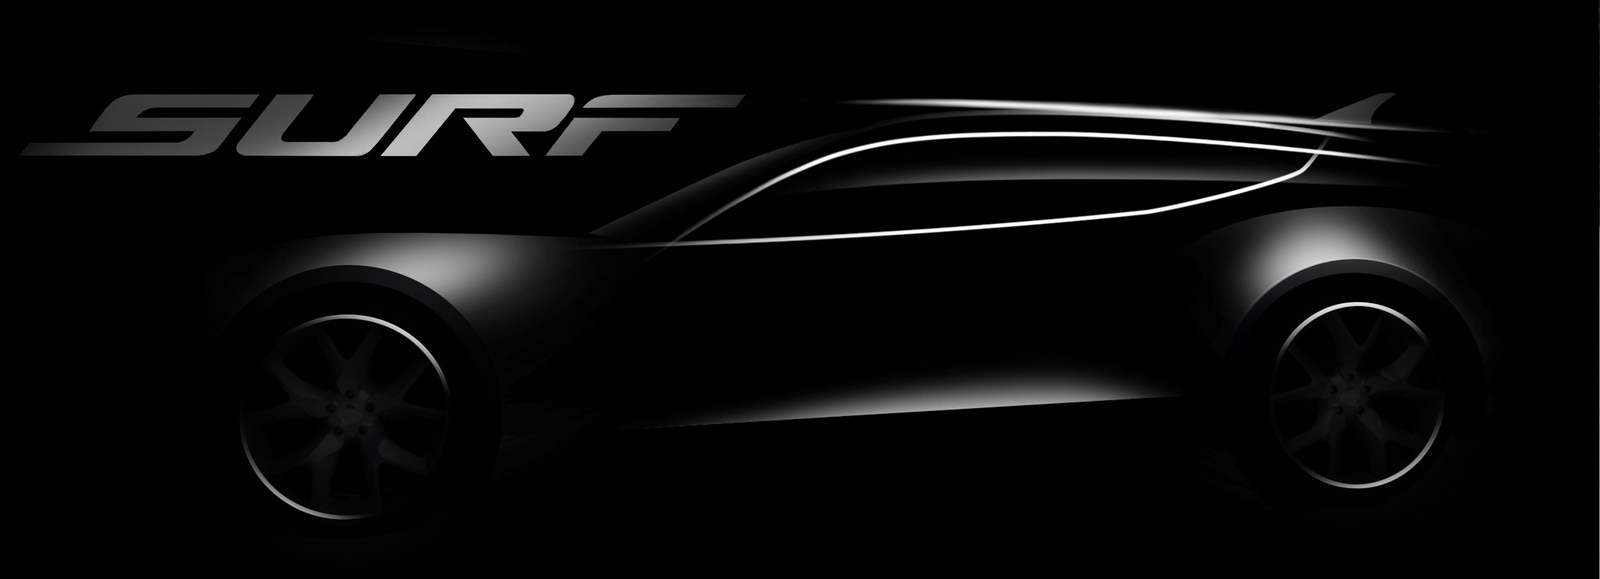 Fisker Surf 1 CSP 2 New 2011 Fisker Surf Concept to be unveiled in Frankfurt Show